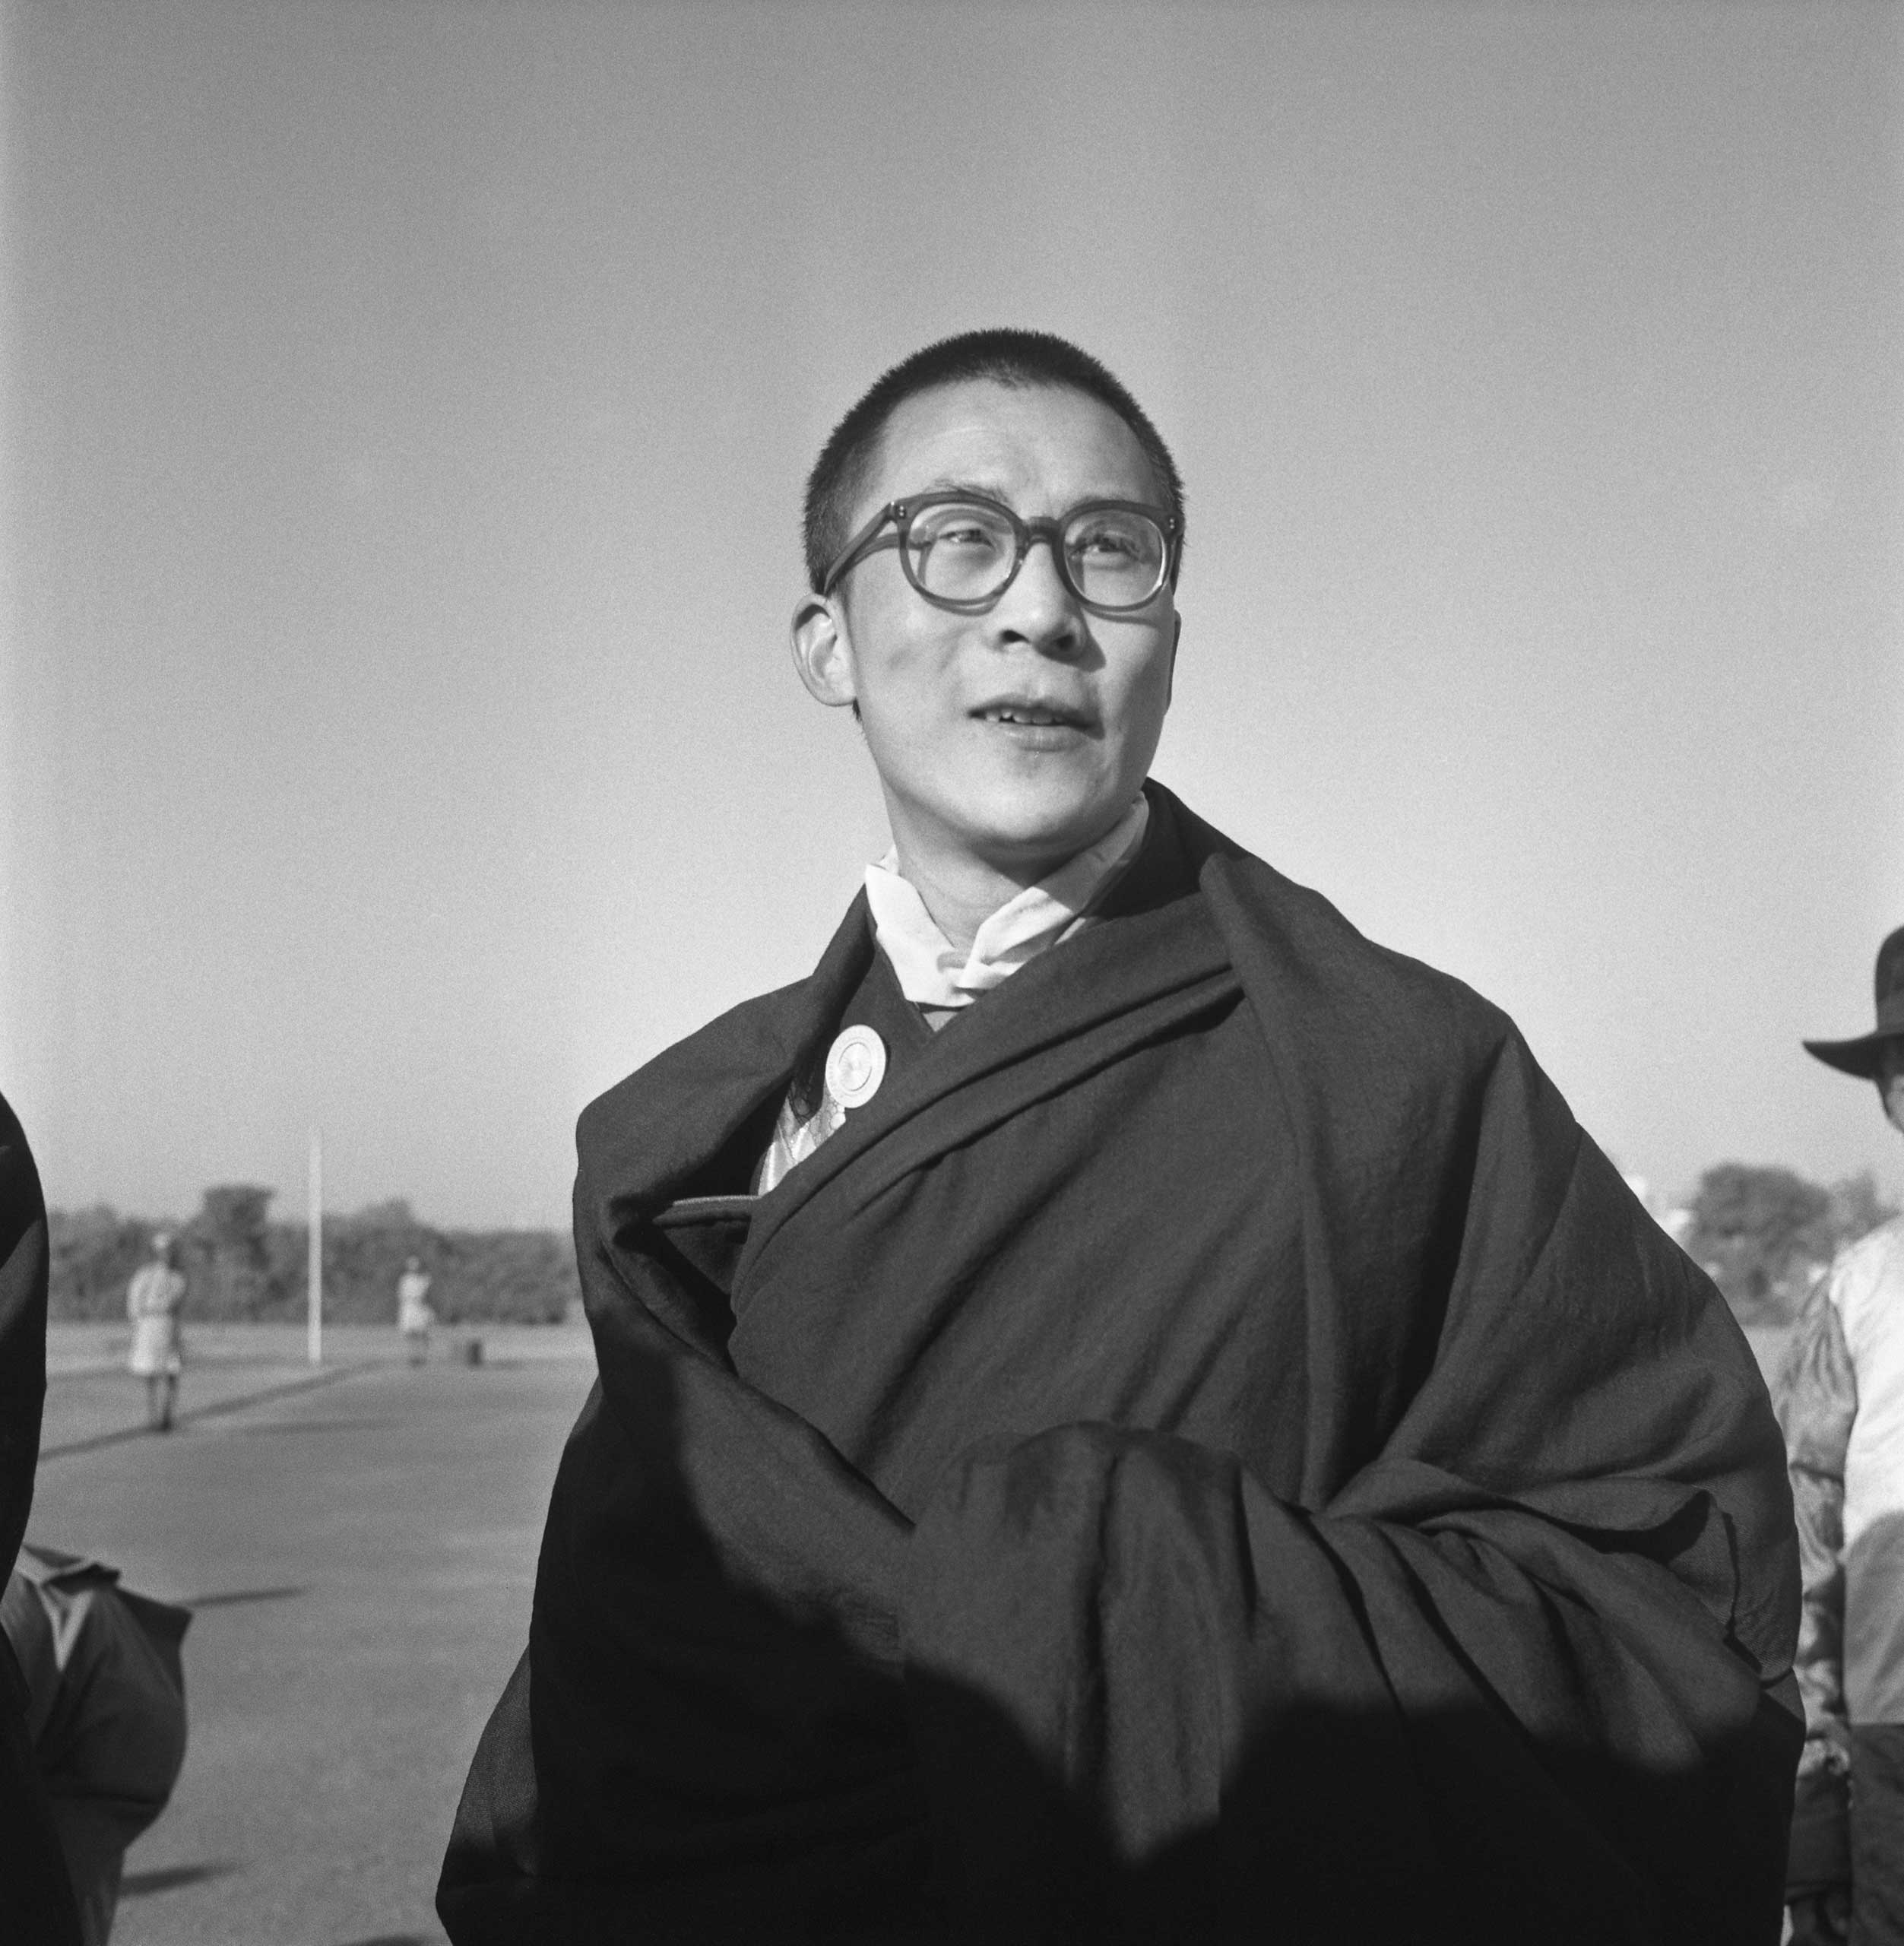 The Dalai Lama pictured in India circa 1965.